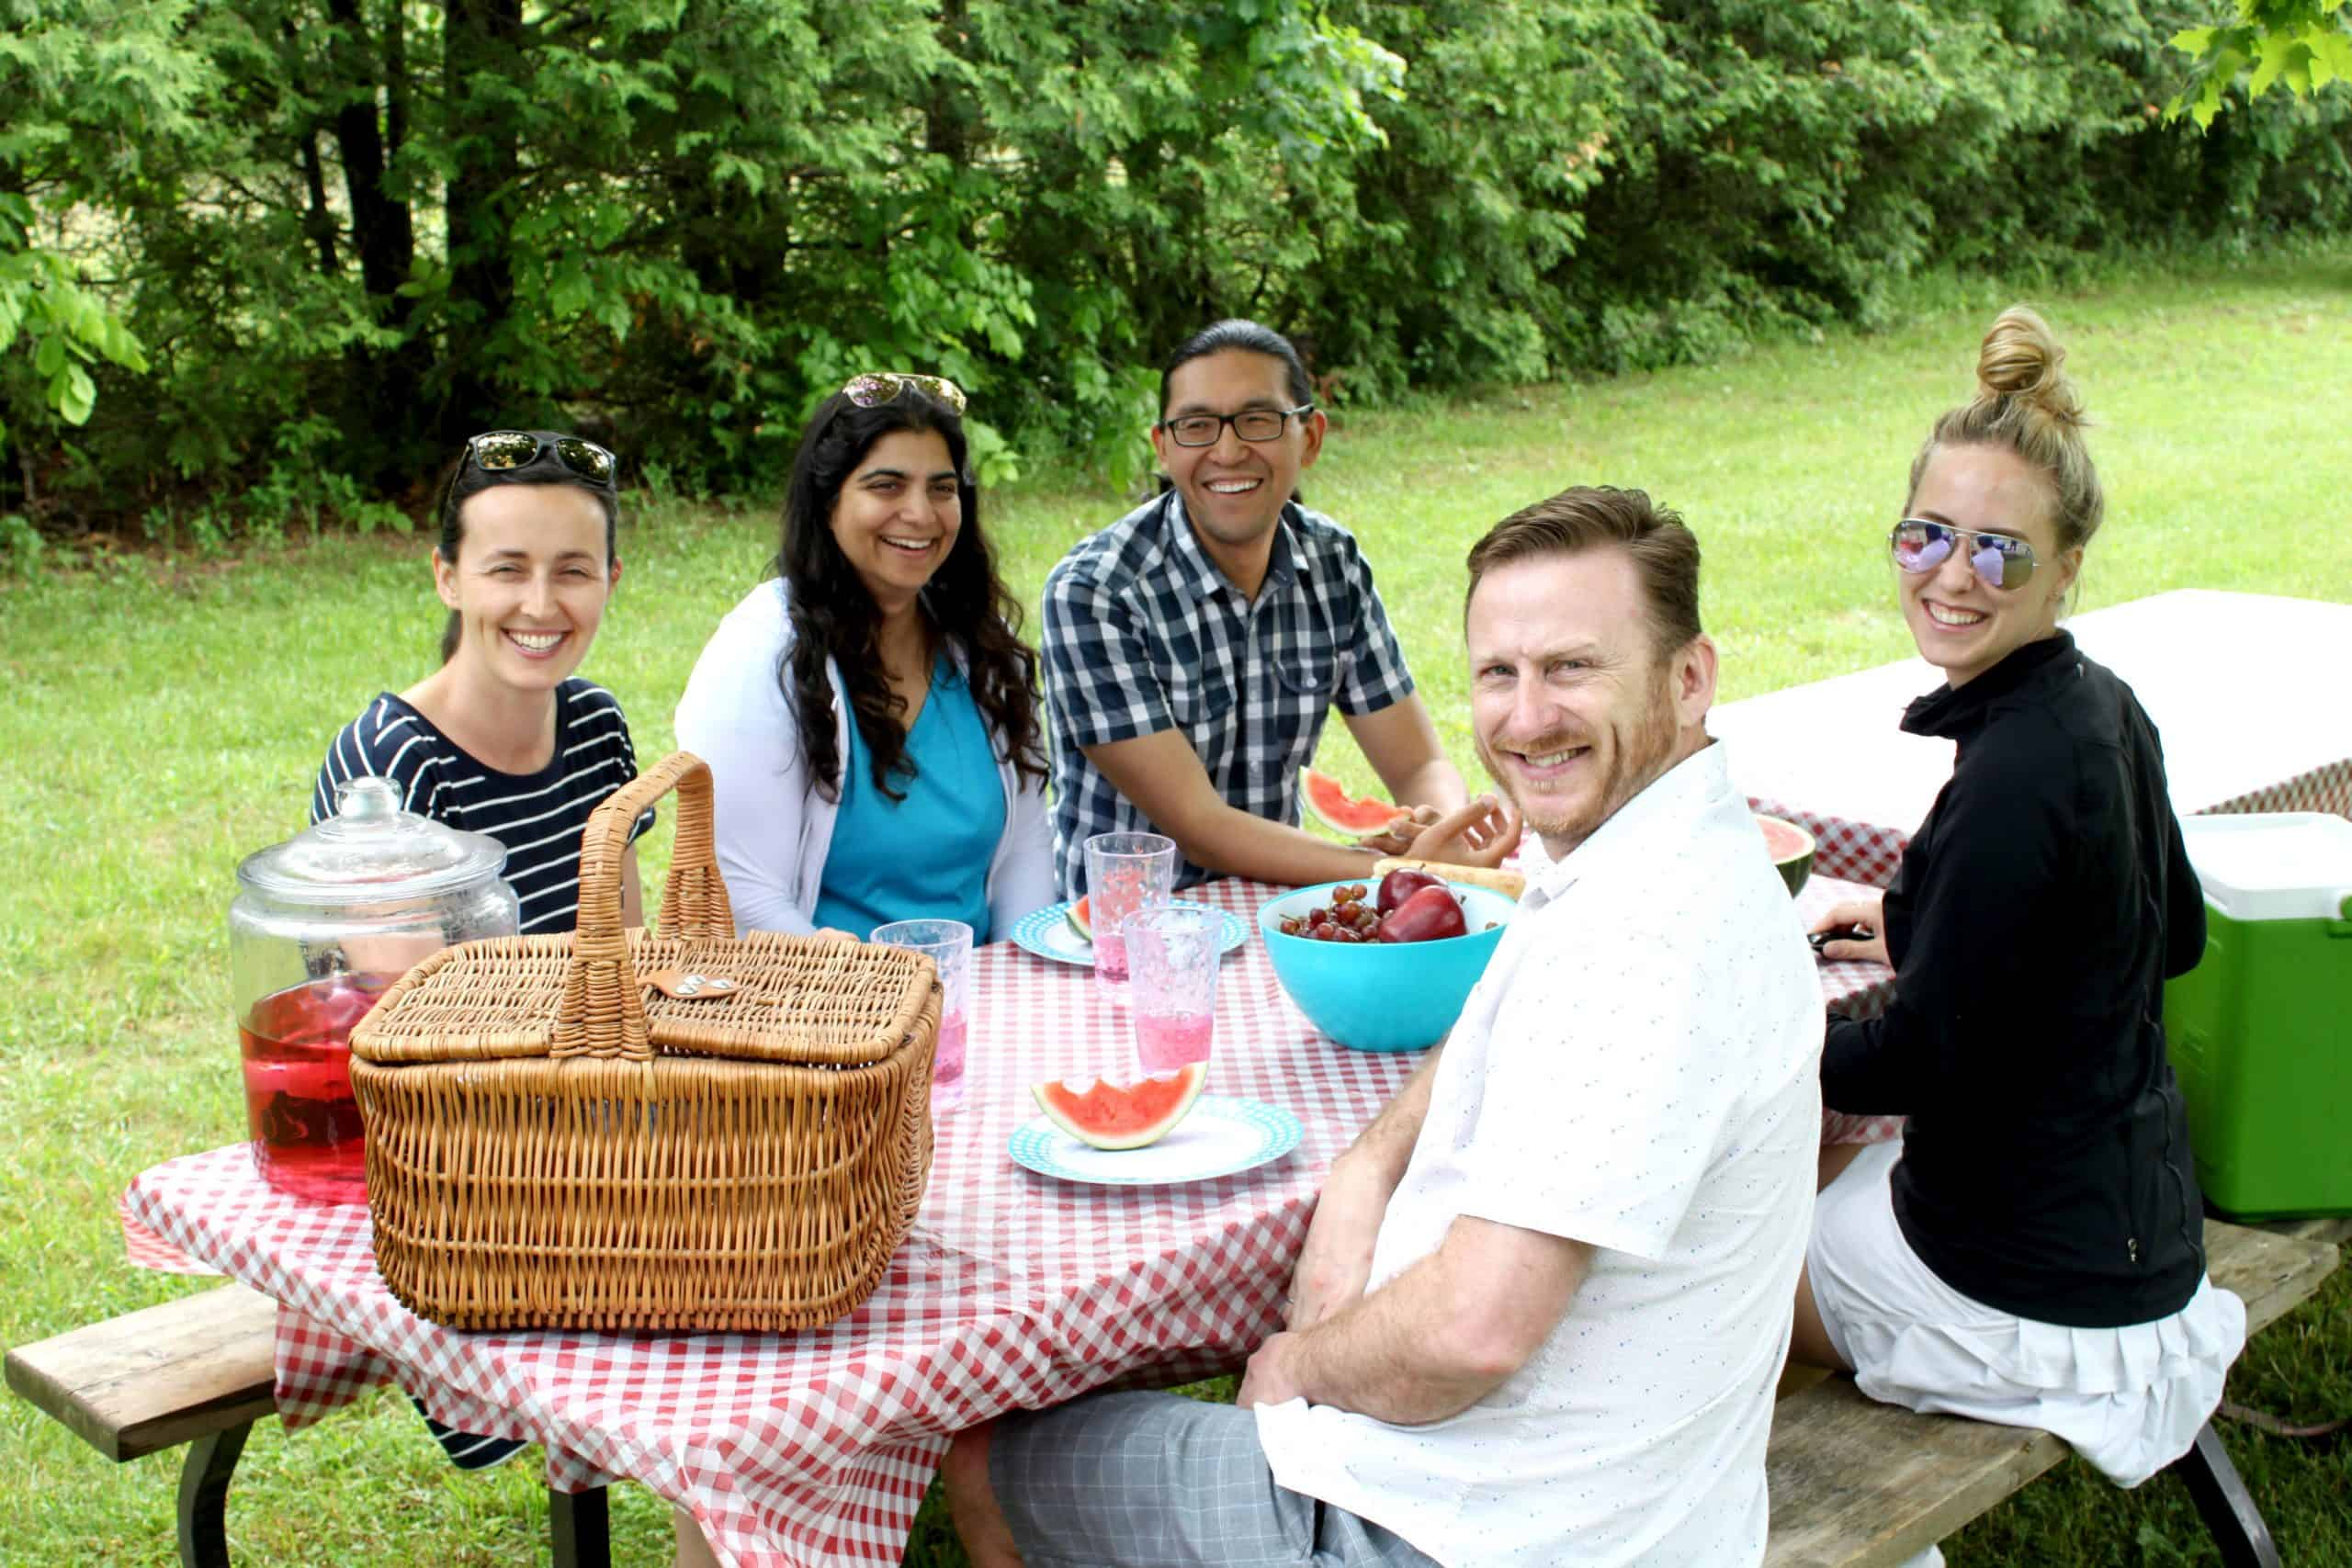 CVC staff sitting at a picnic table outdoors eating their lunch.